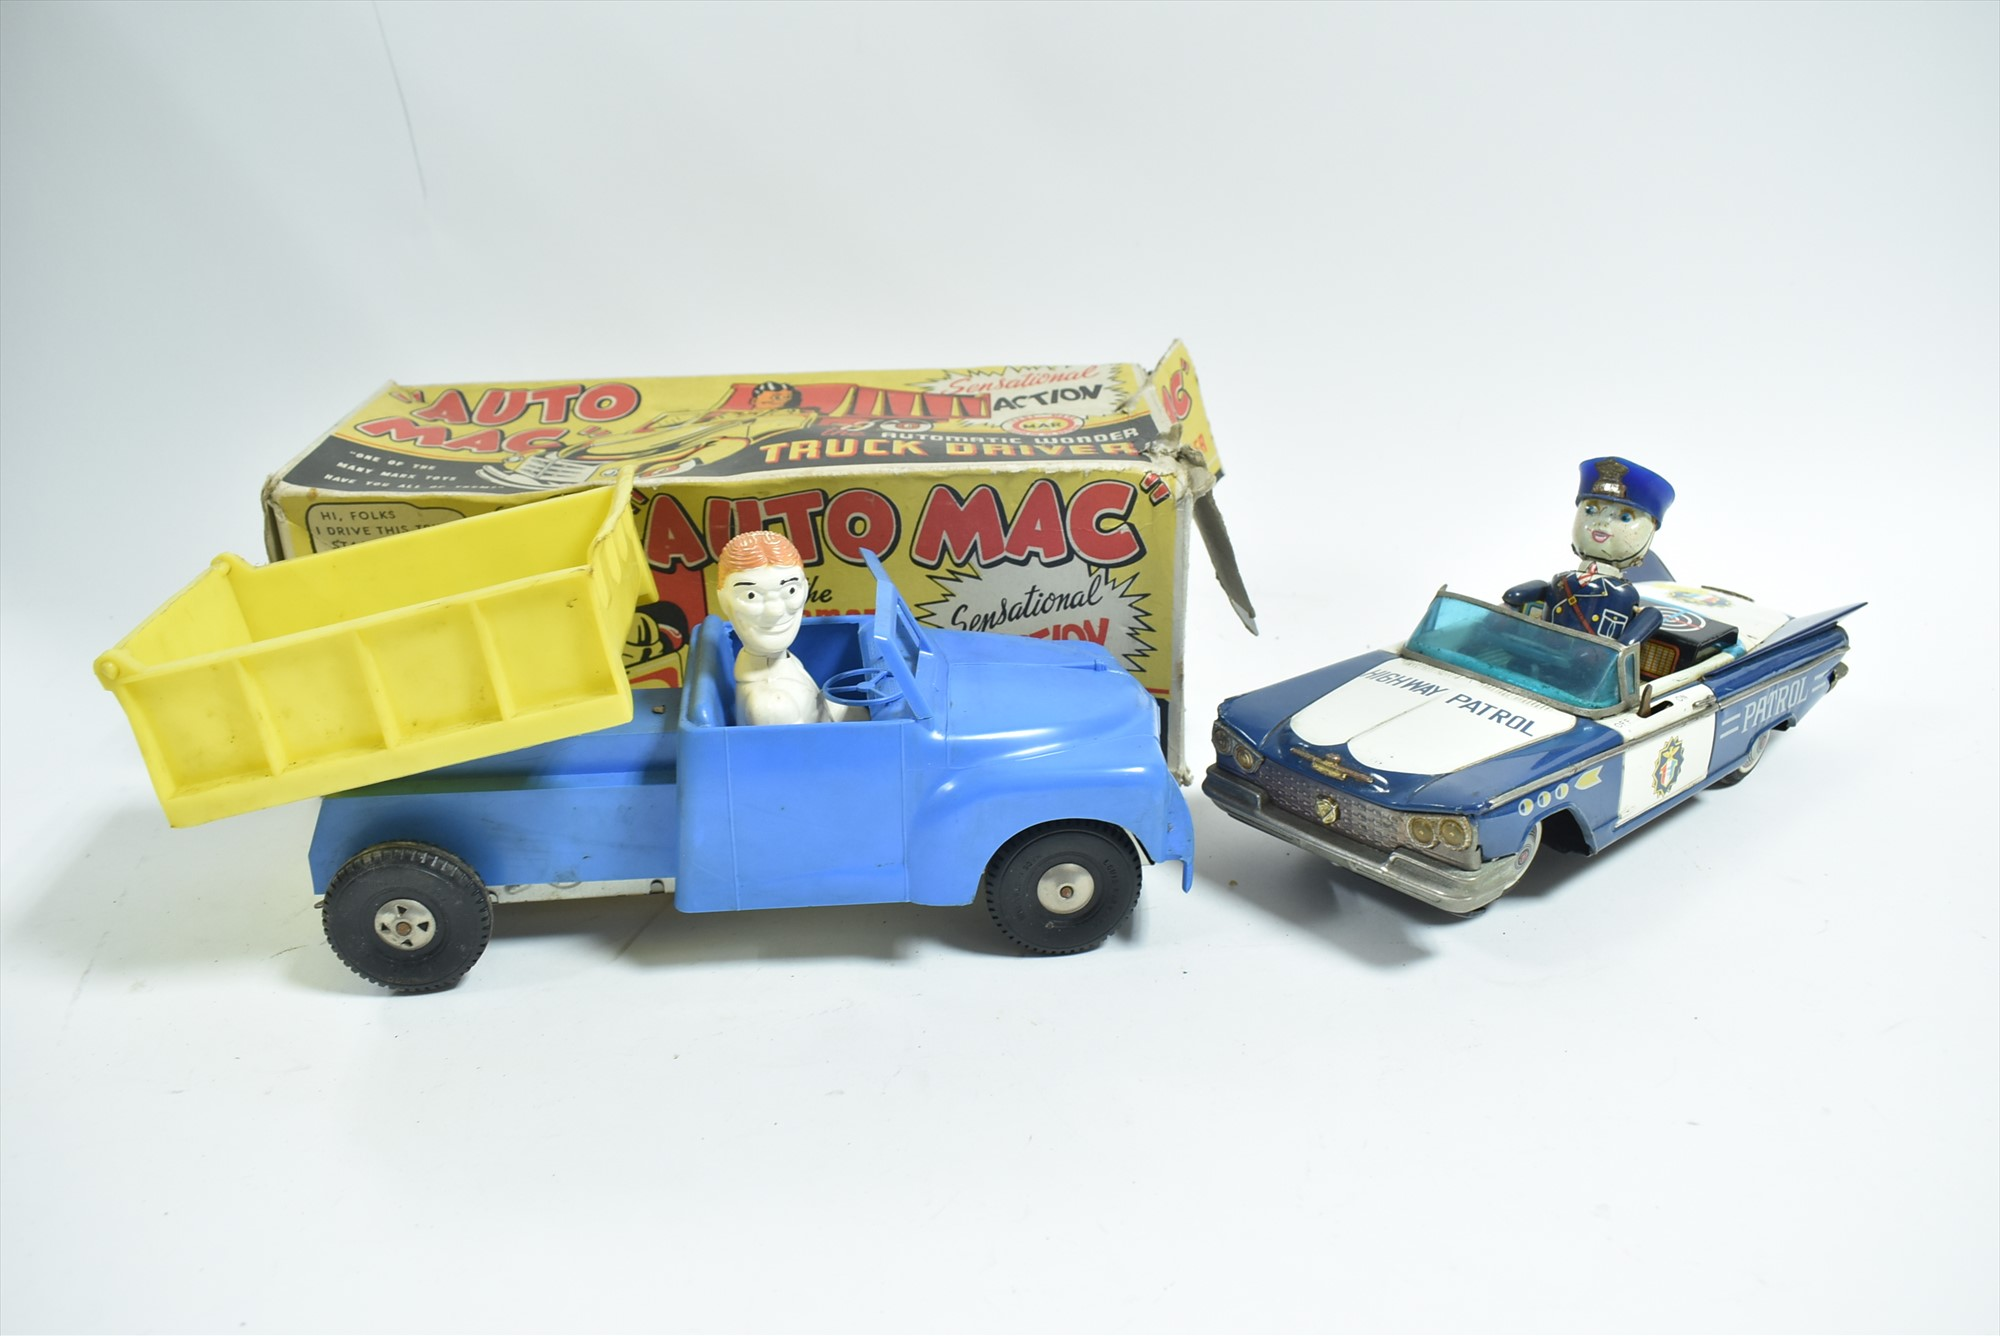 Lot 285 - Marx Auto Mac and tinplate Police car